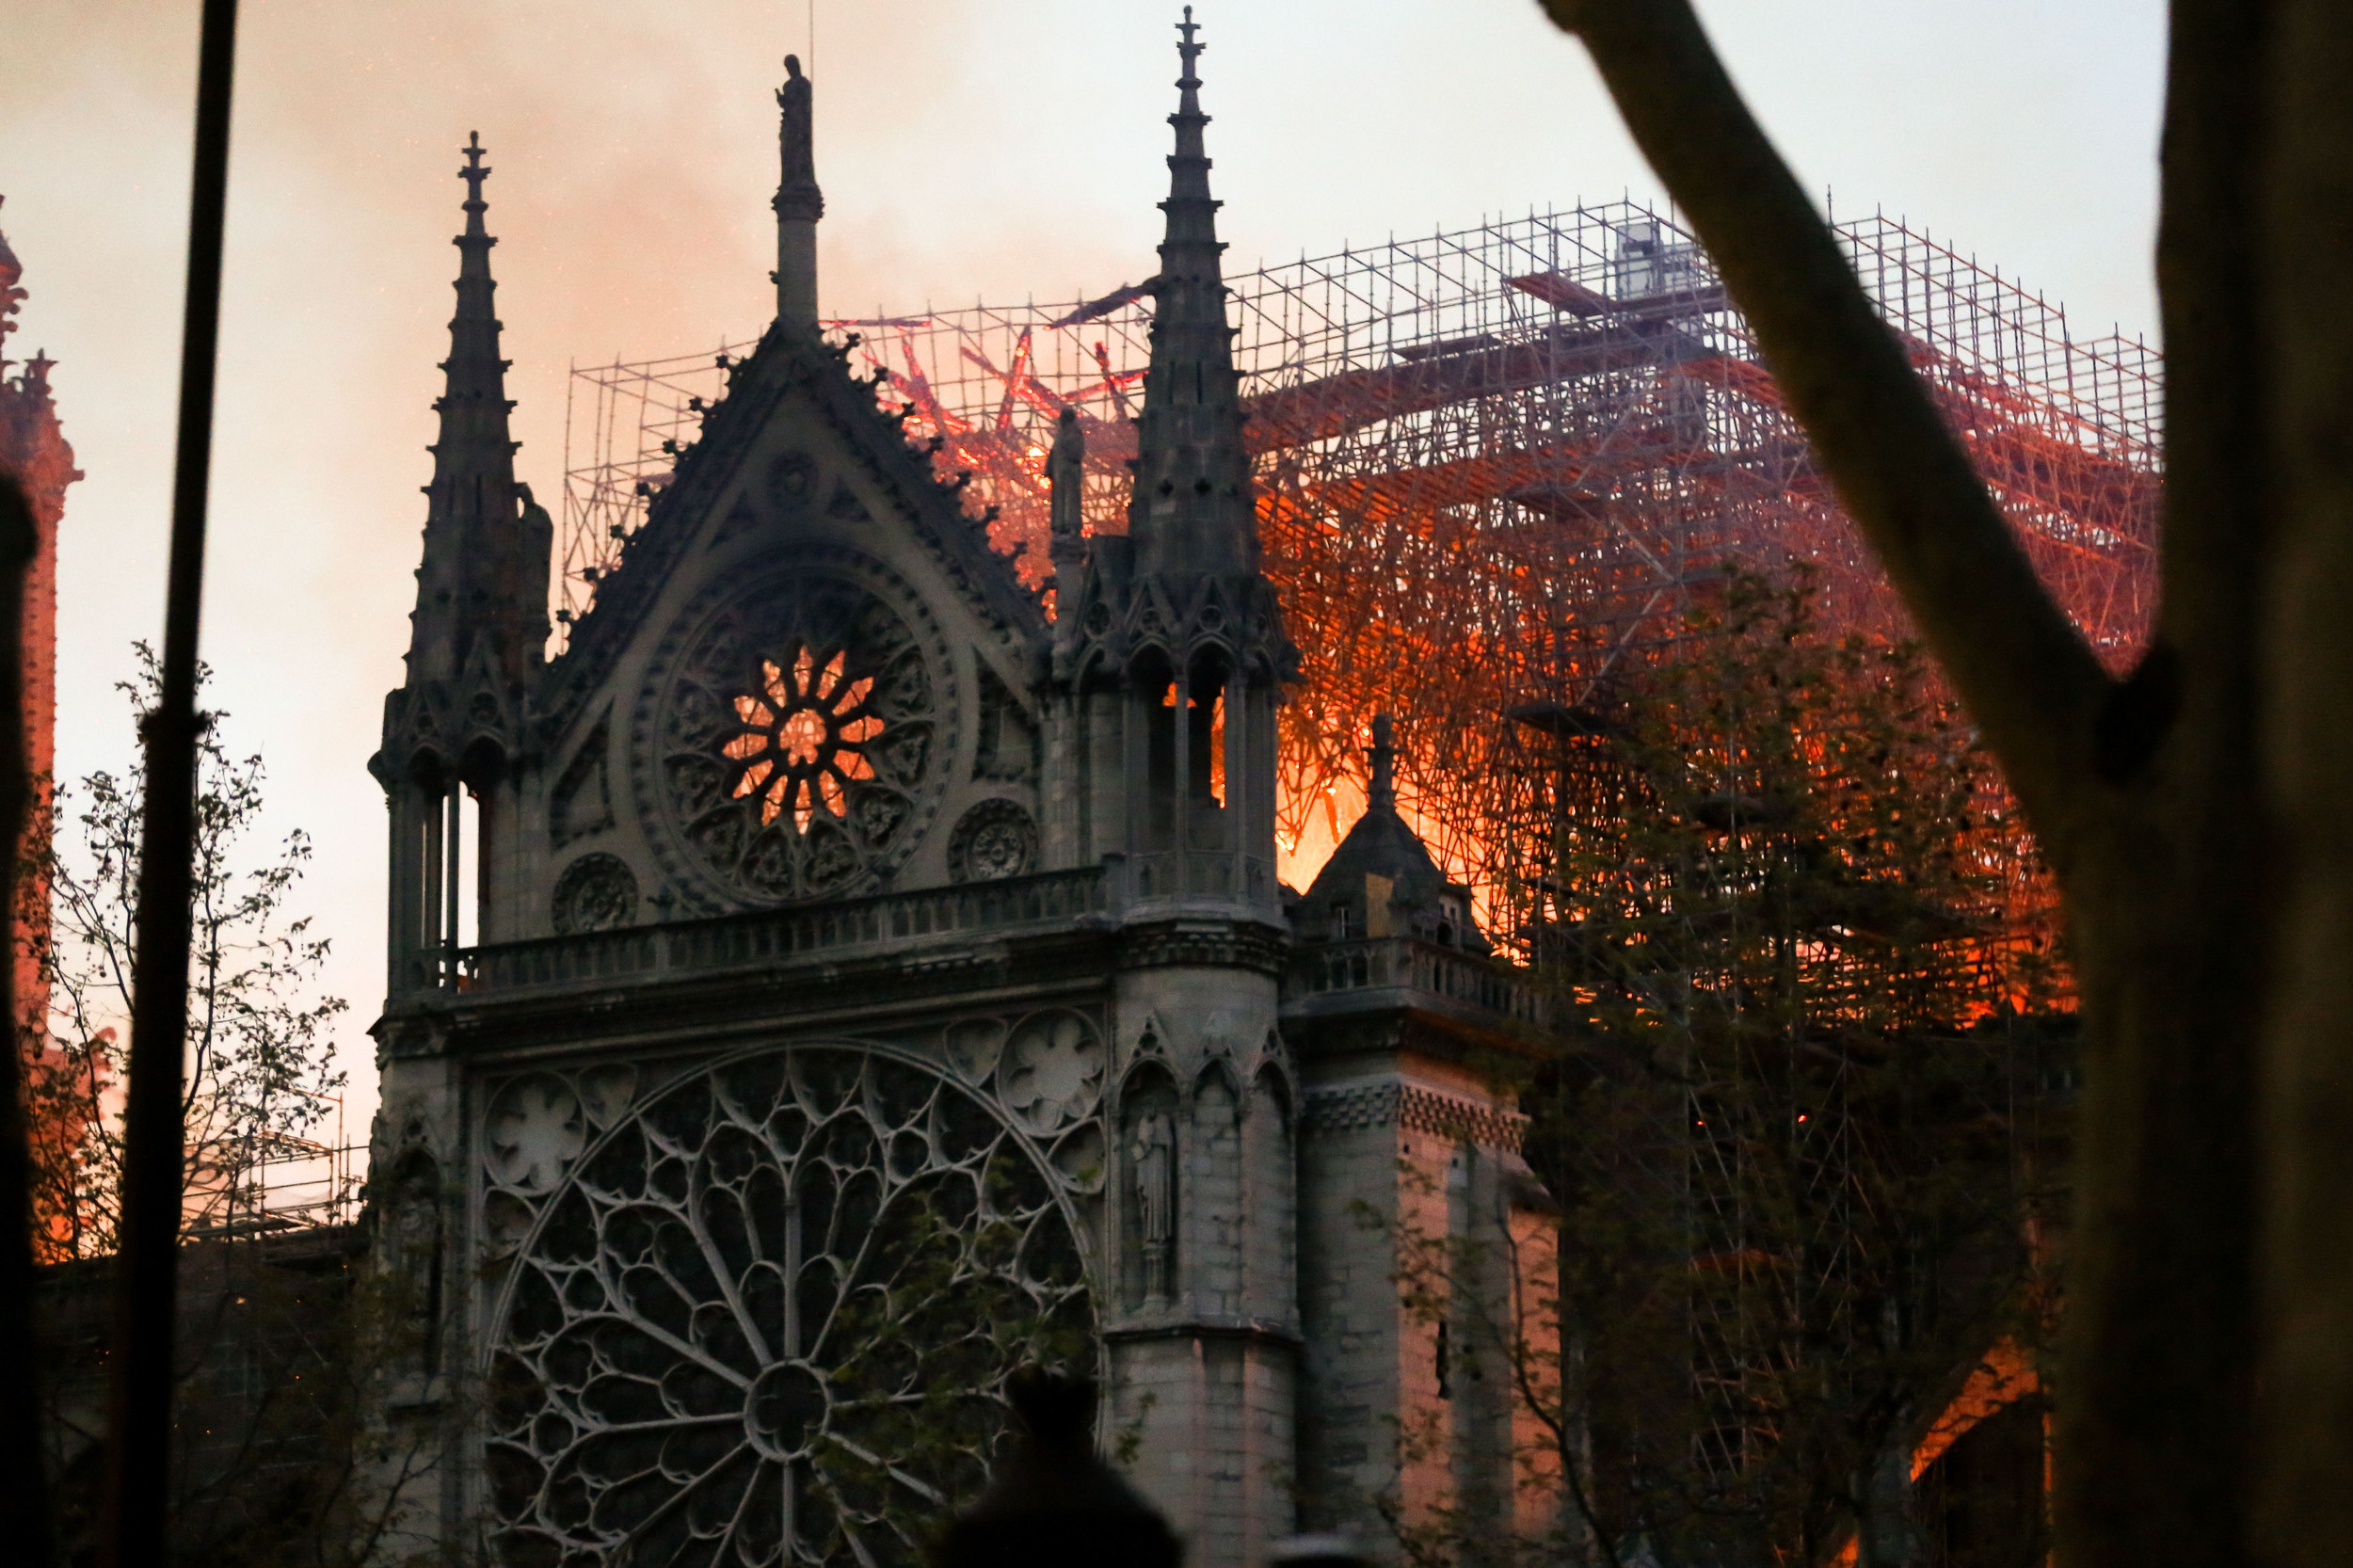 The Companies Behind Gucci and Louis Vuitton Are Donating Hundreds of Millions of Dollars to Repair Notre Dame Cathedral